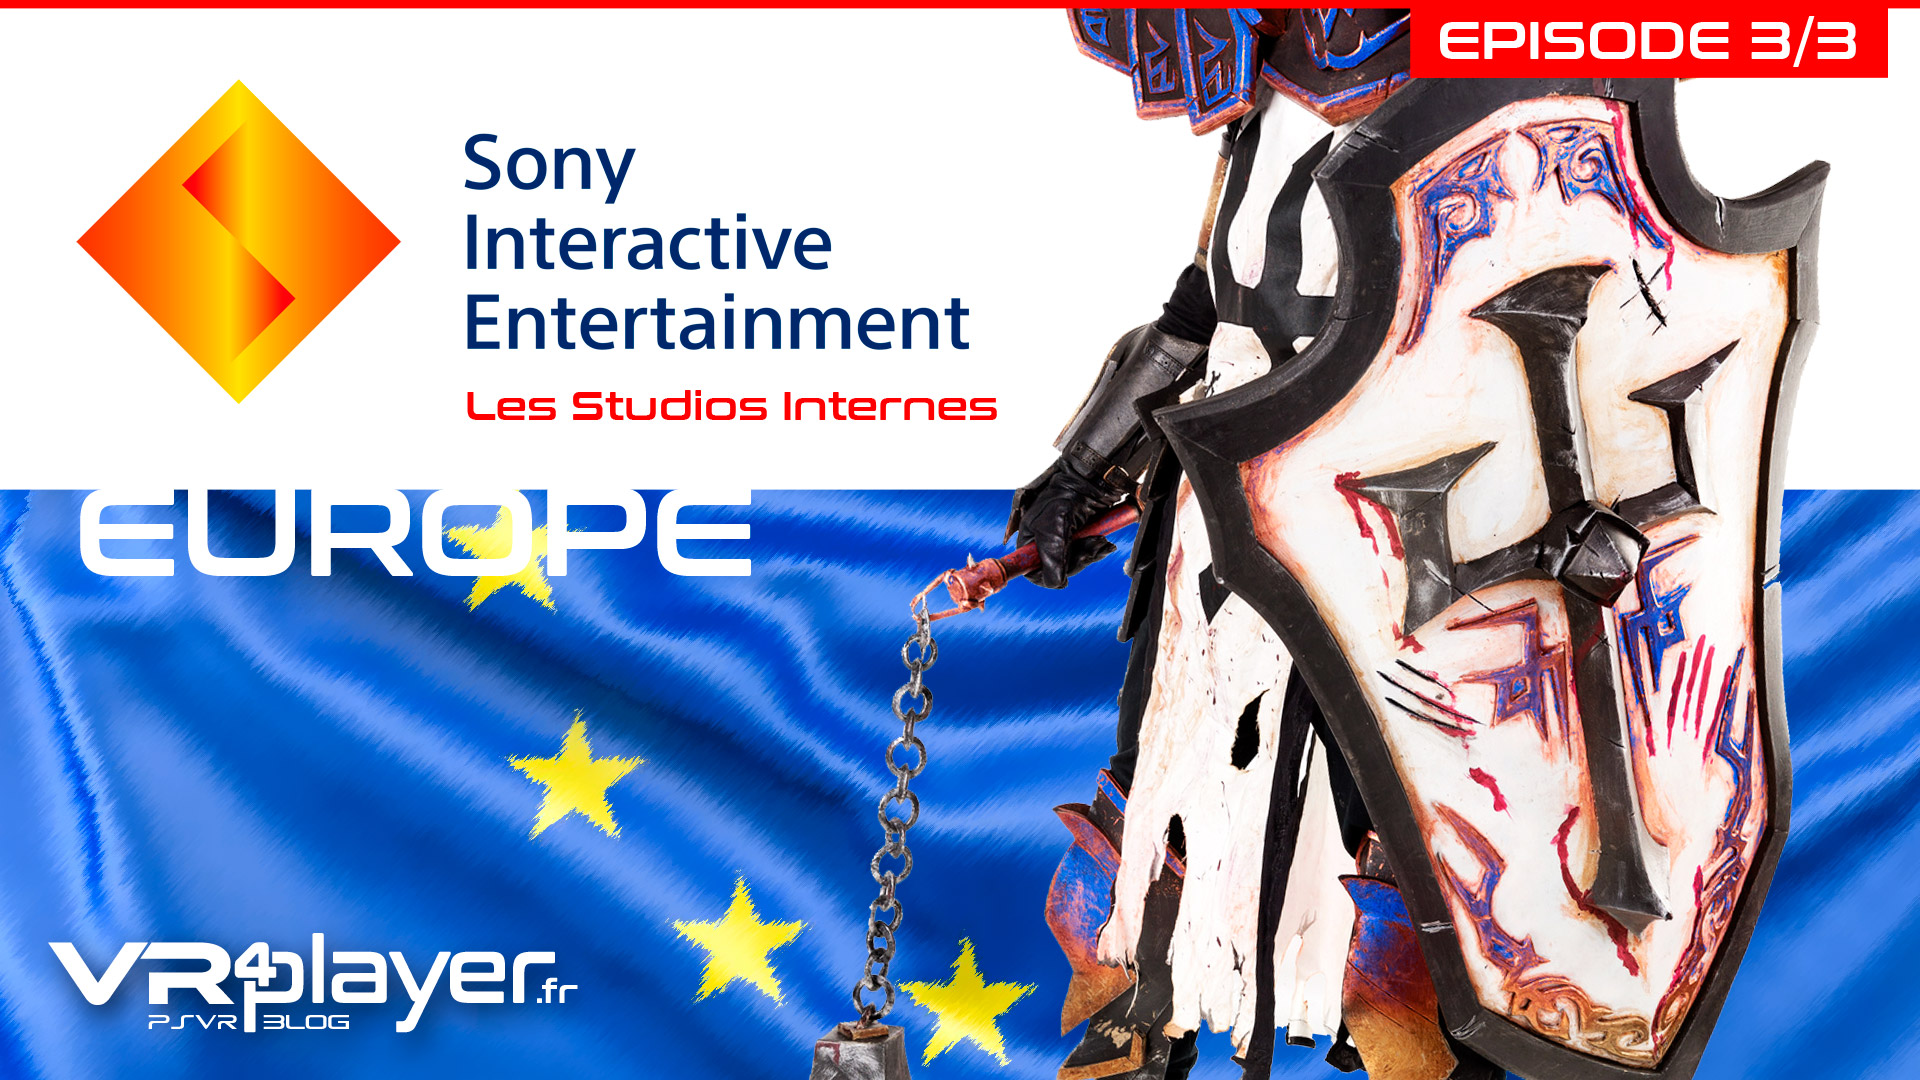 Sony, les studios Europe VR4player.